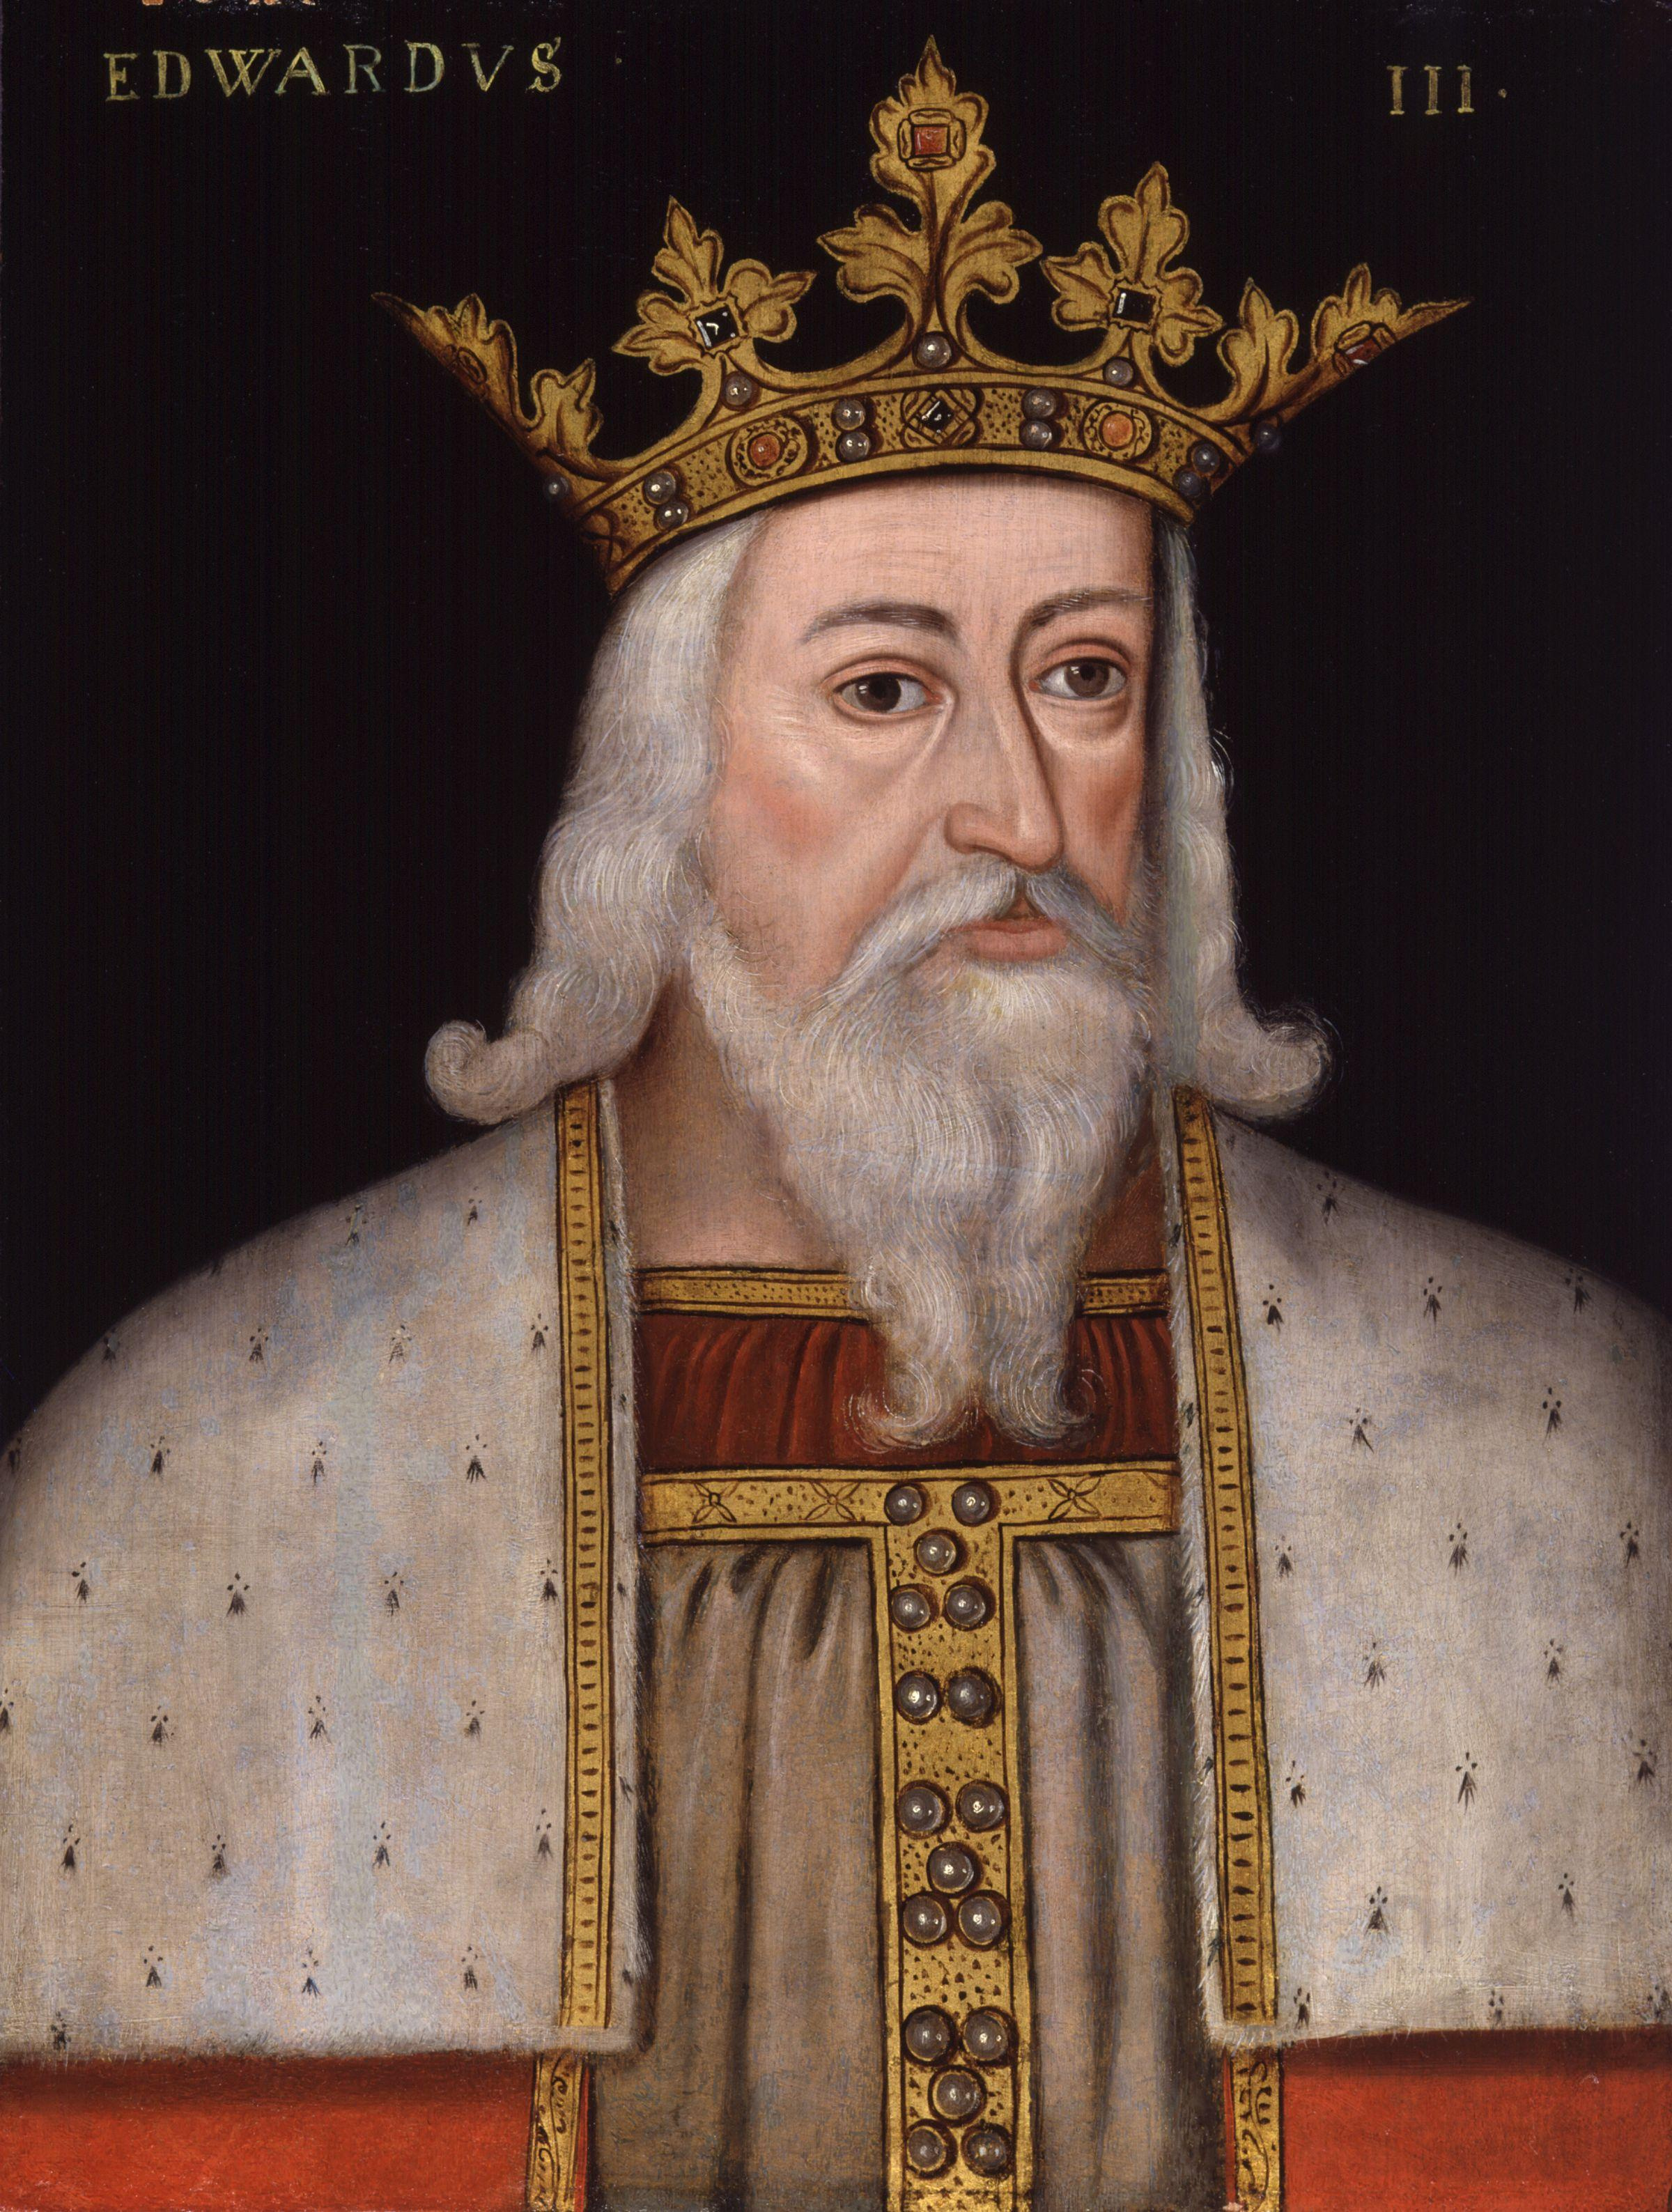 Edward III, King of England from 1327 to 1377.